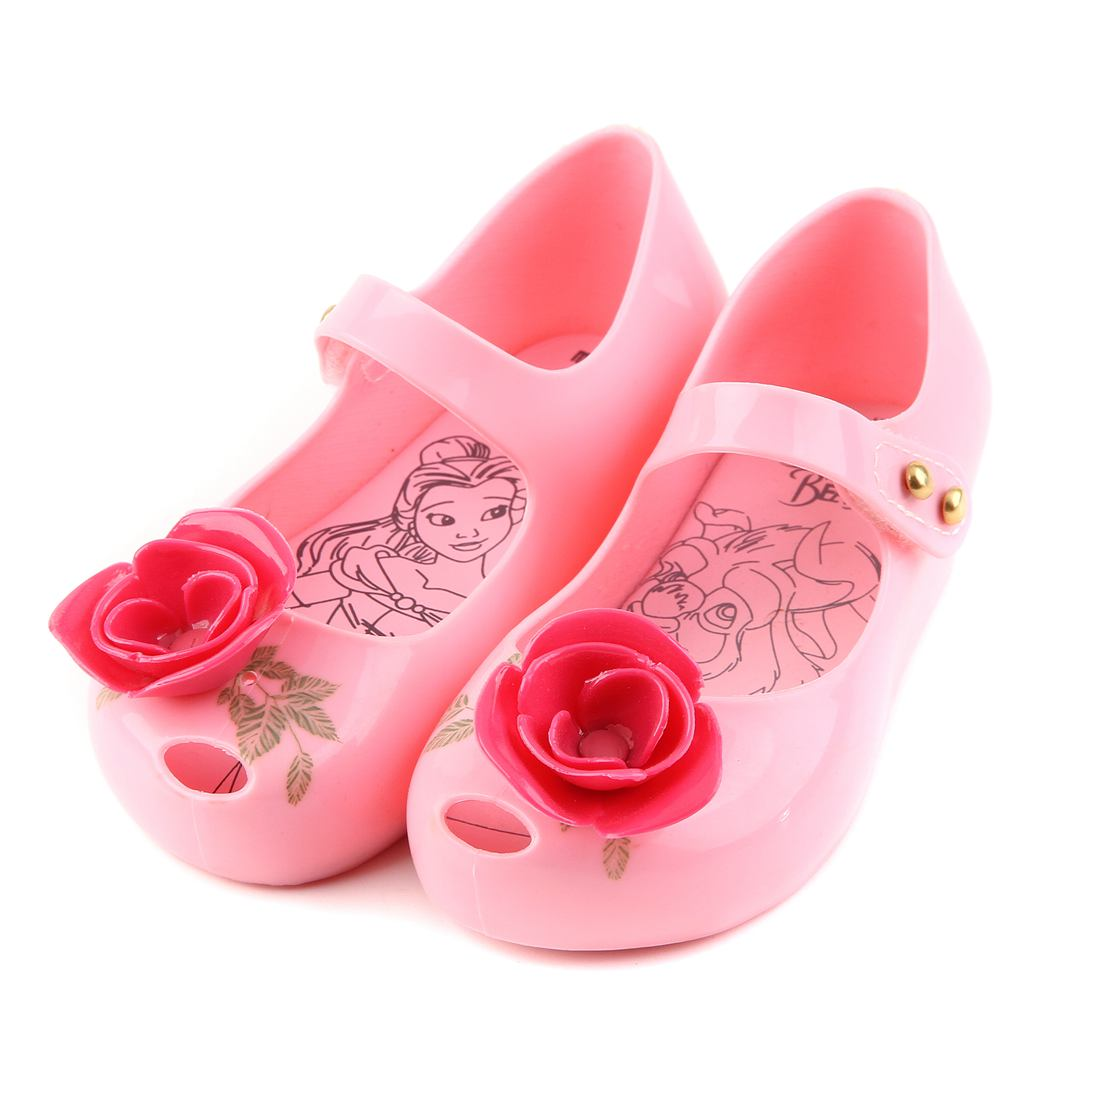 Melissa Kids Sandals Mini Rose With Green Leaves Printed Girl Shoe New Beauty Beast Jelly Princess Rain Shoes Soft Plastic